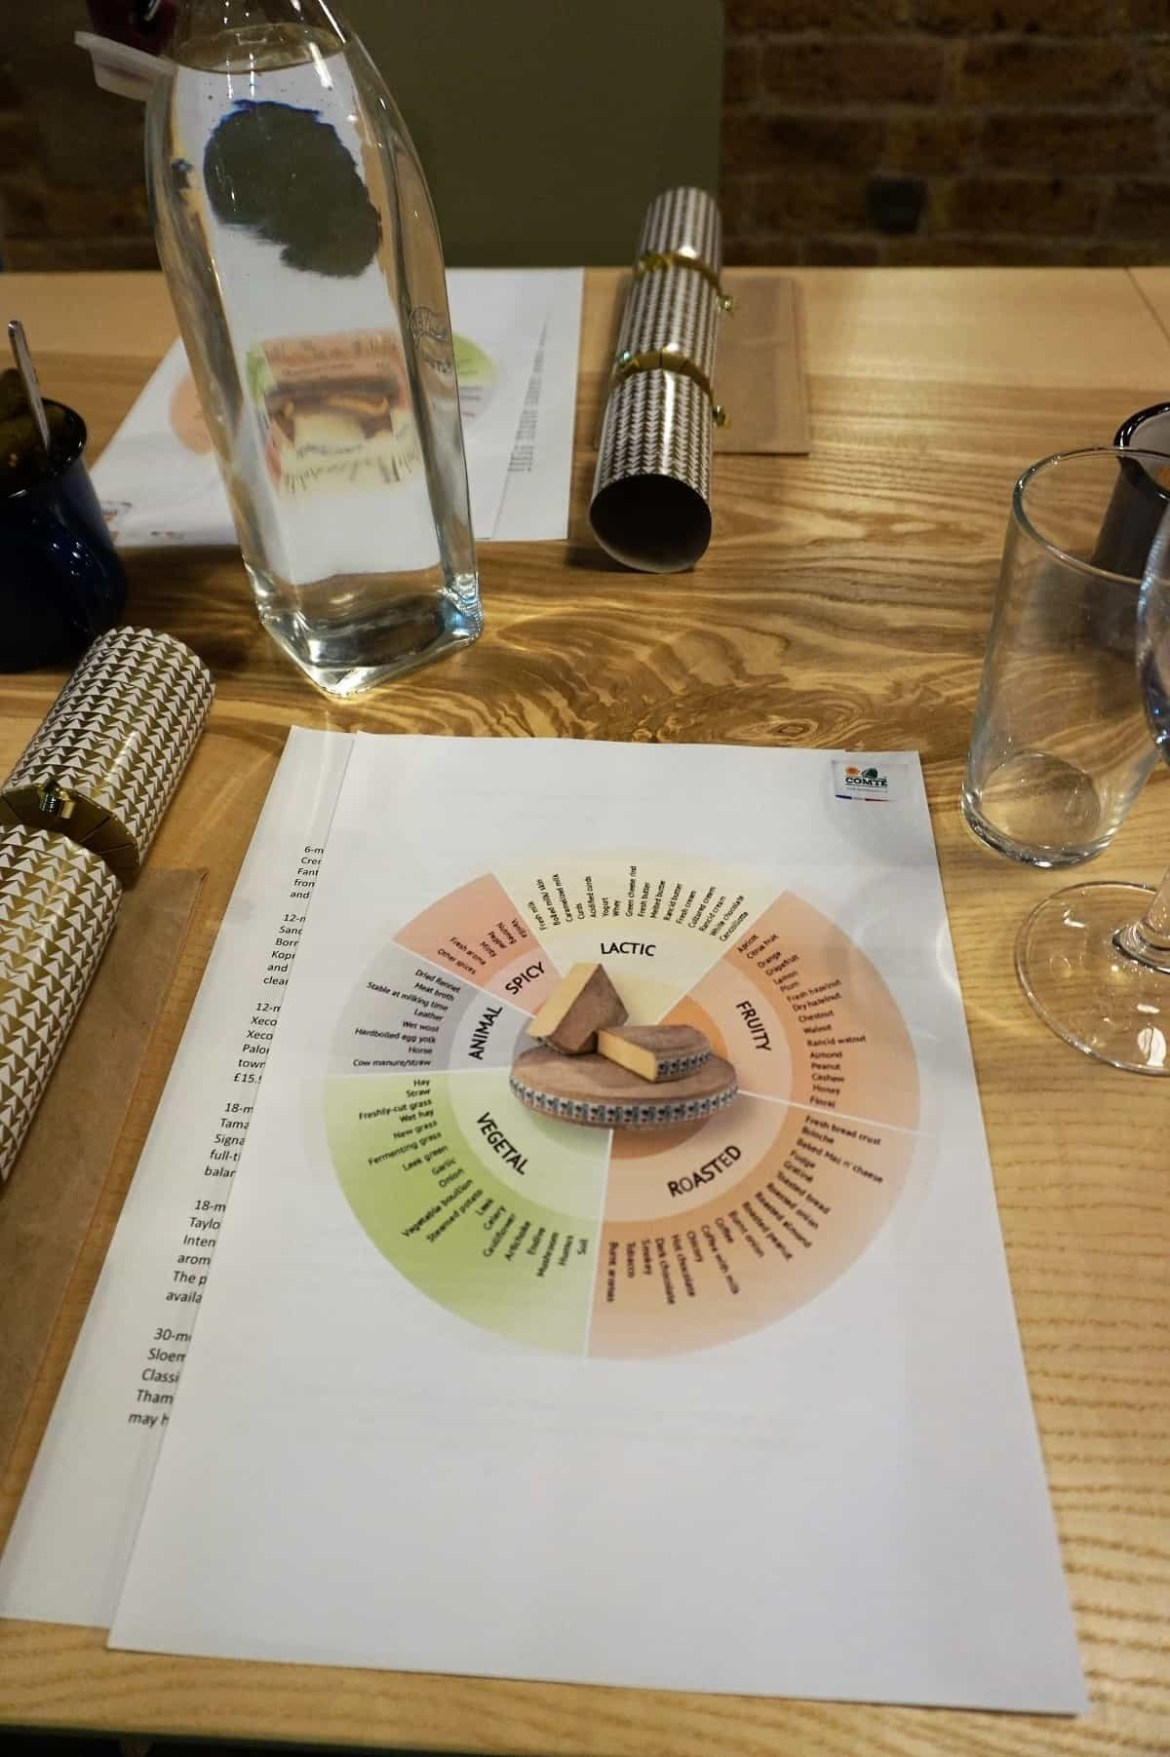 Comte tasting notes